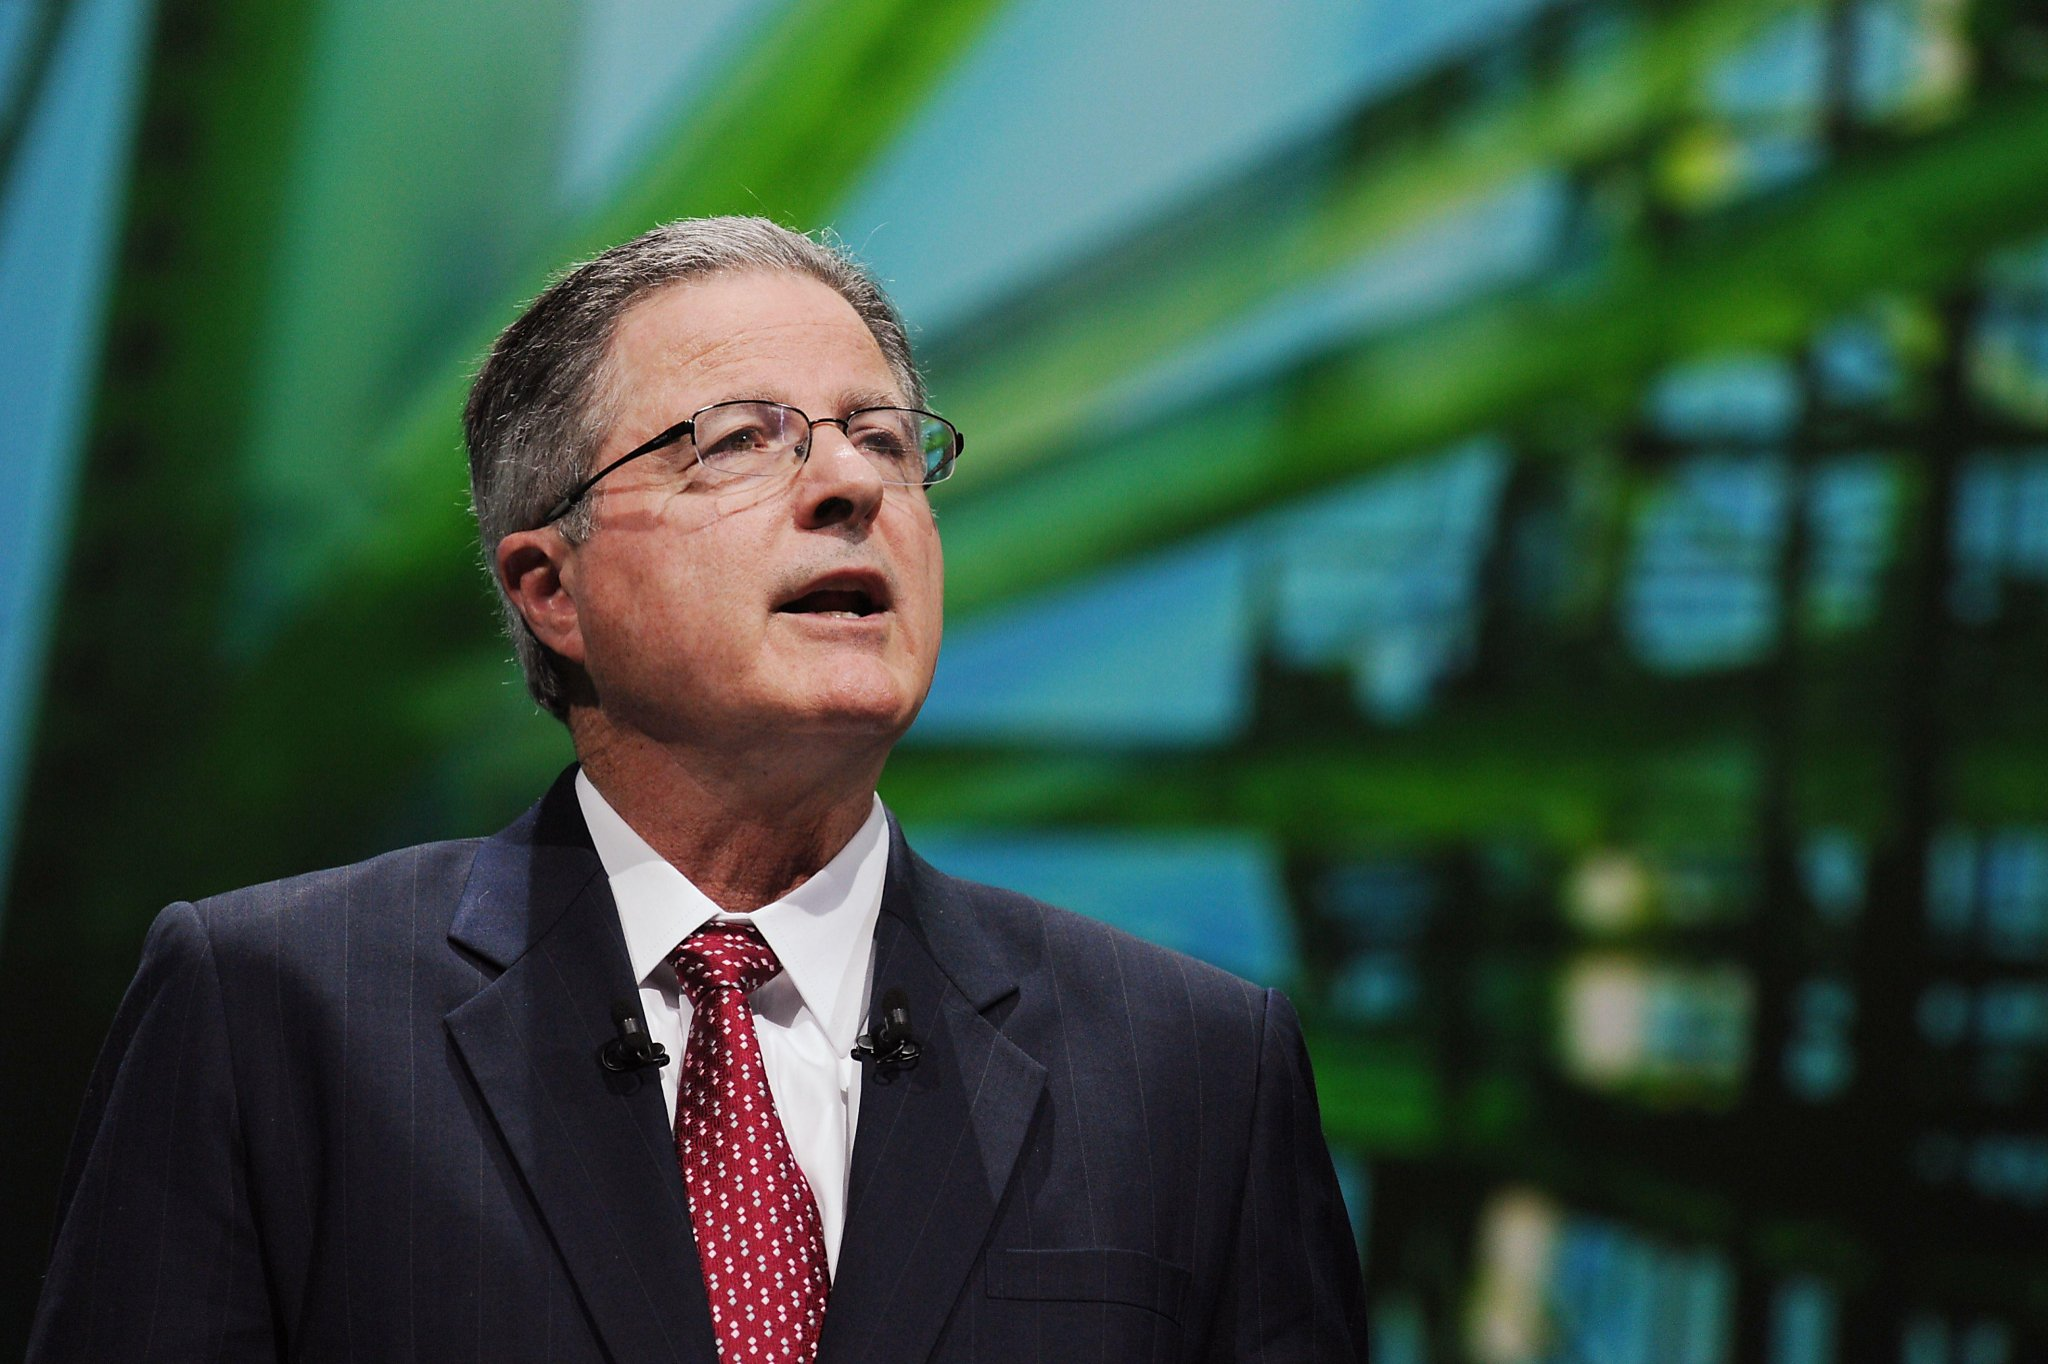 Chevron CEO John Watson will step down - SFGate